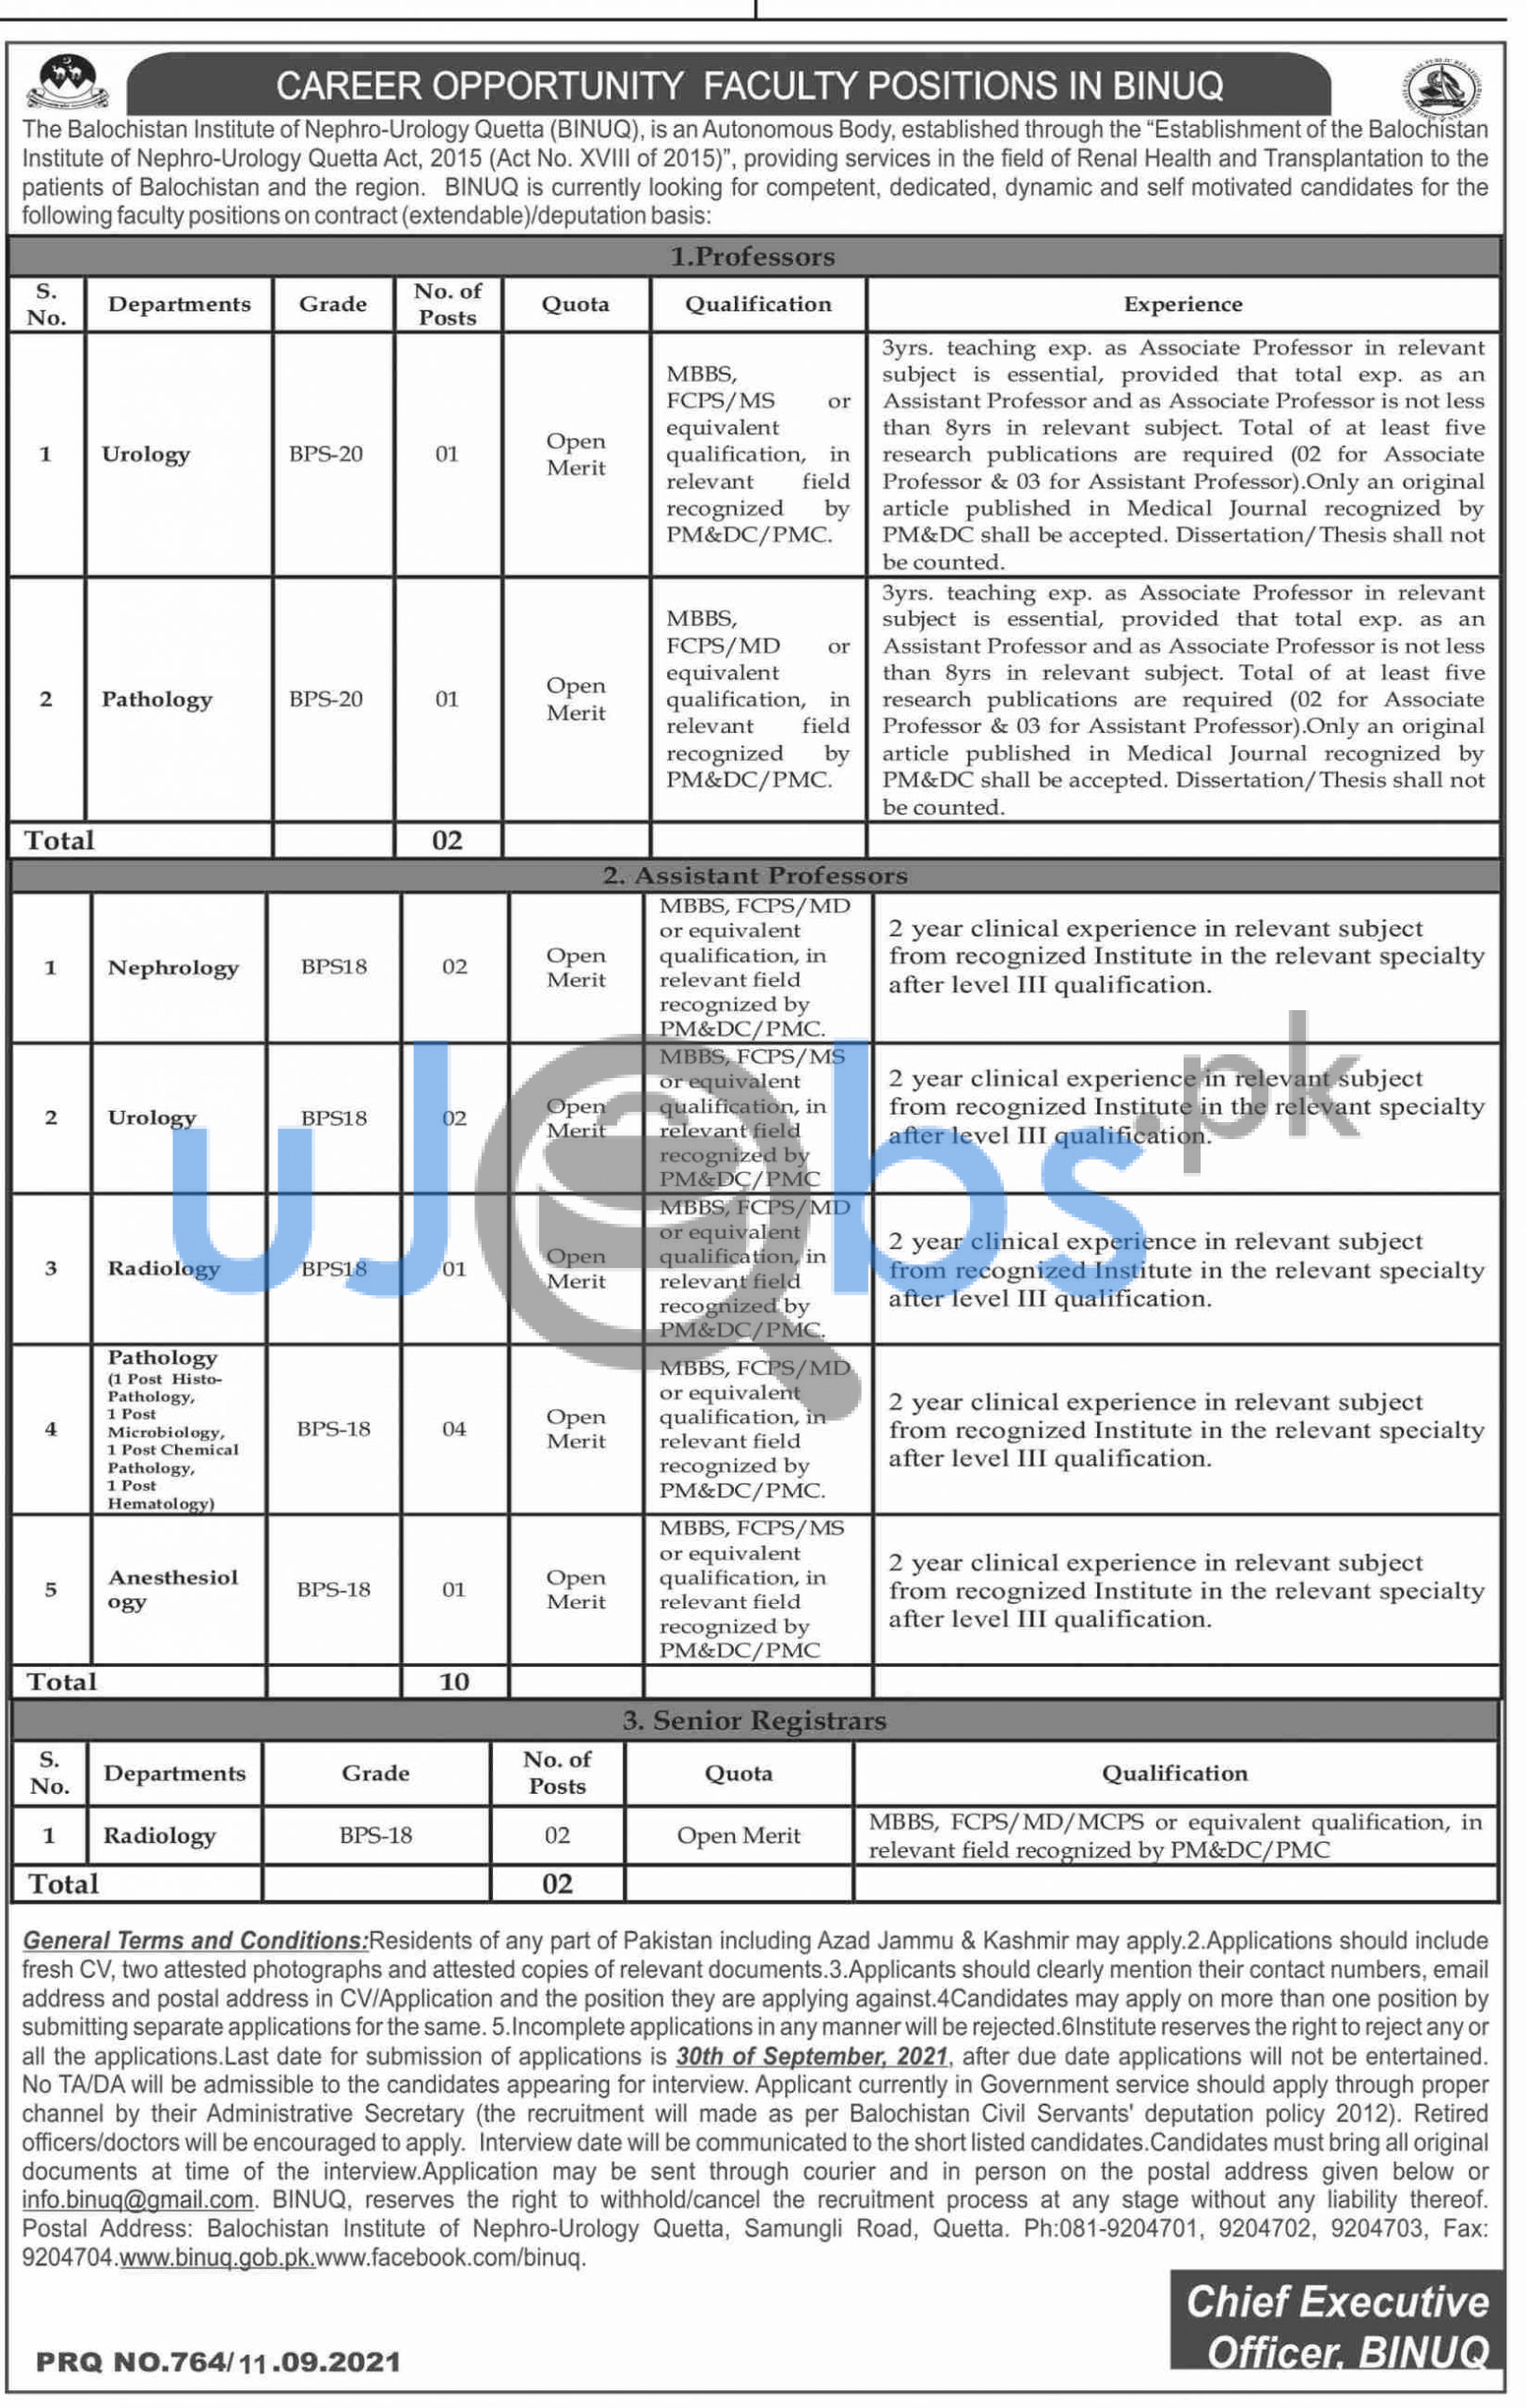 Government Jobs in Quetta 2021 For MBBS, FCPS, MS